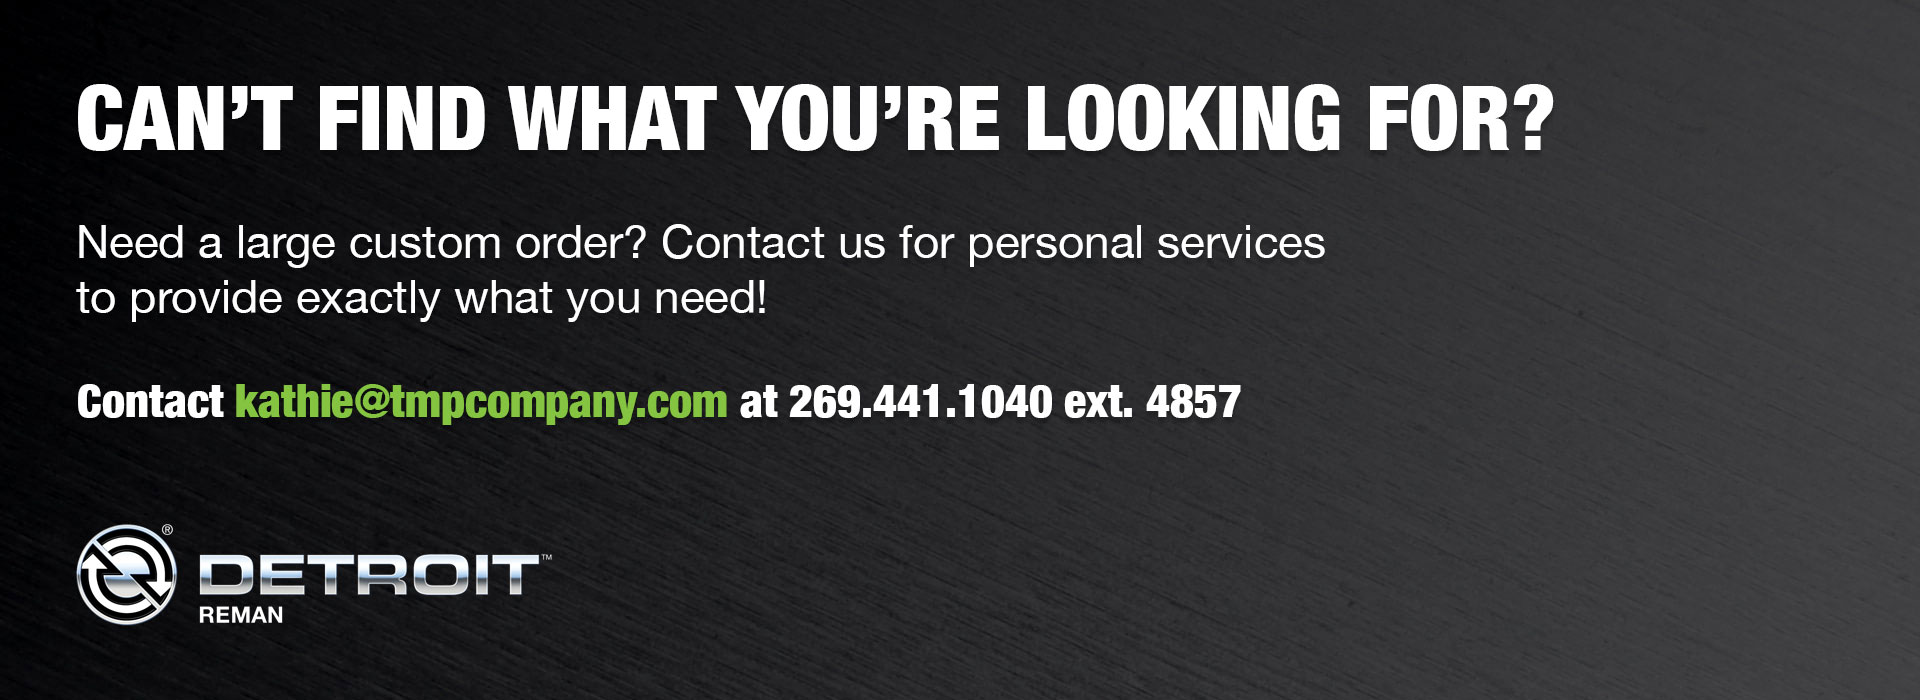 Can't find what you're looking for? Need a large custom order? Contact us for personal services to provide exactly what you need! Contact kathie@tmpcompany.com at 269-441-1040 ext. 4857